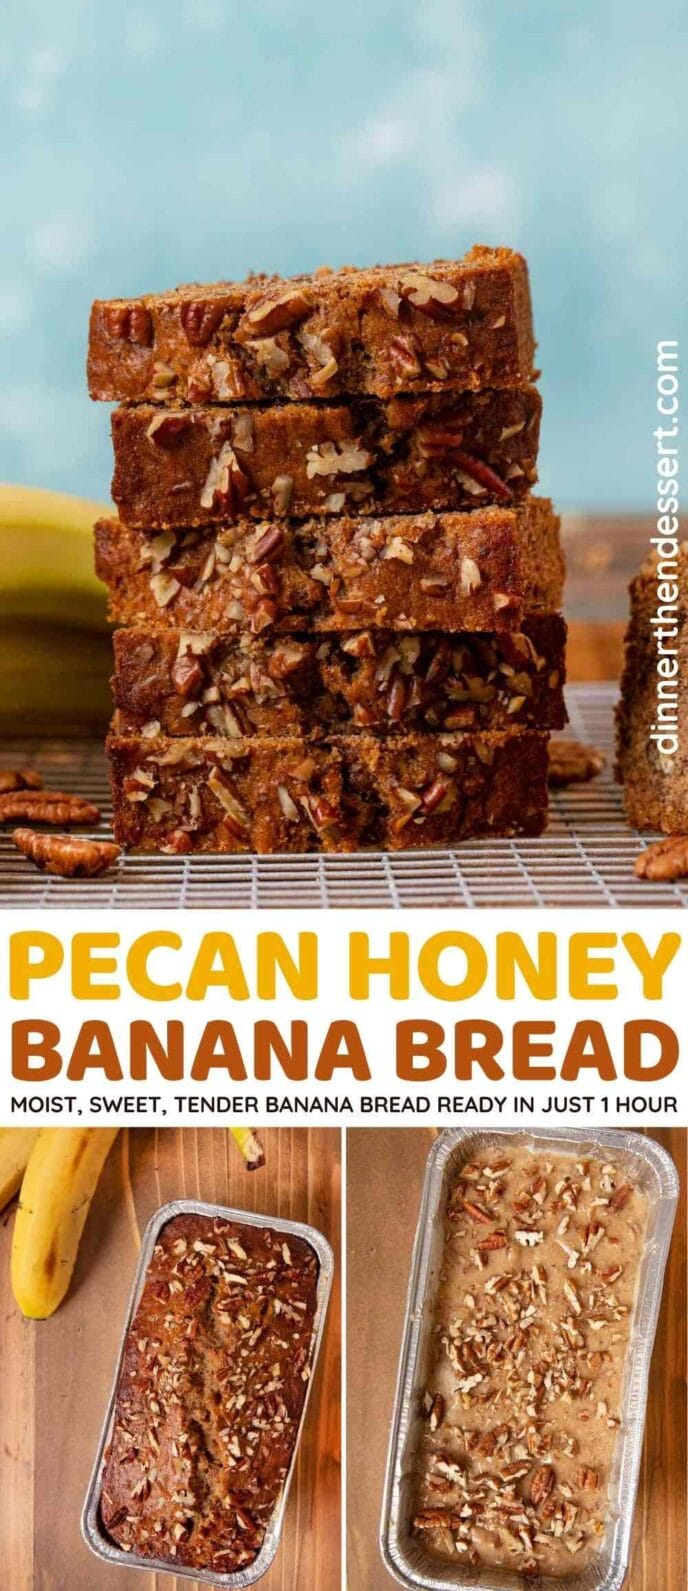 Pecan Honey Banana Bread